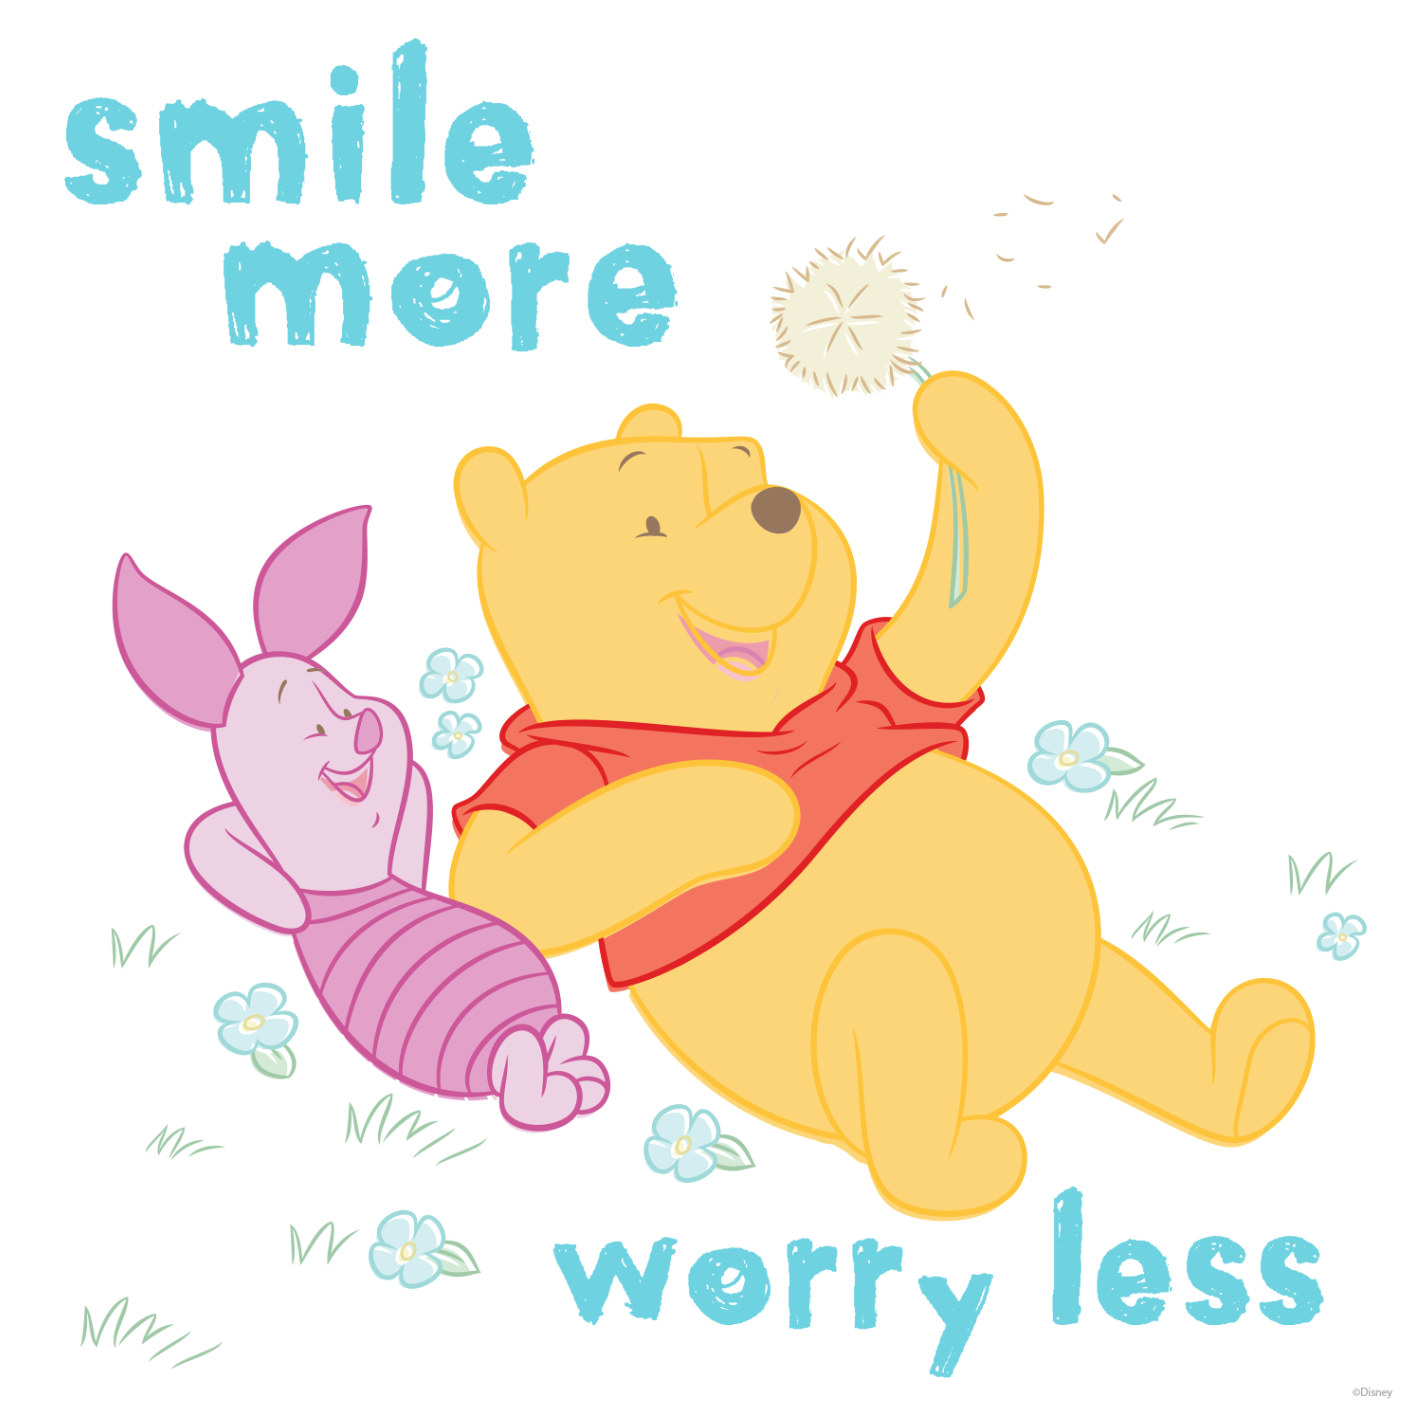 Winnie the Pooh Art To Brighten Up Your Day | Bears, Disney quotes ...